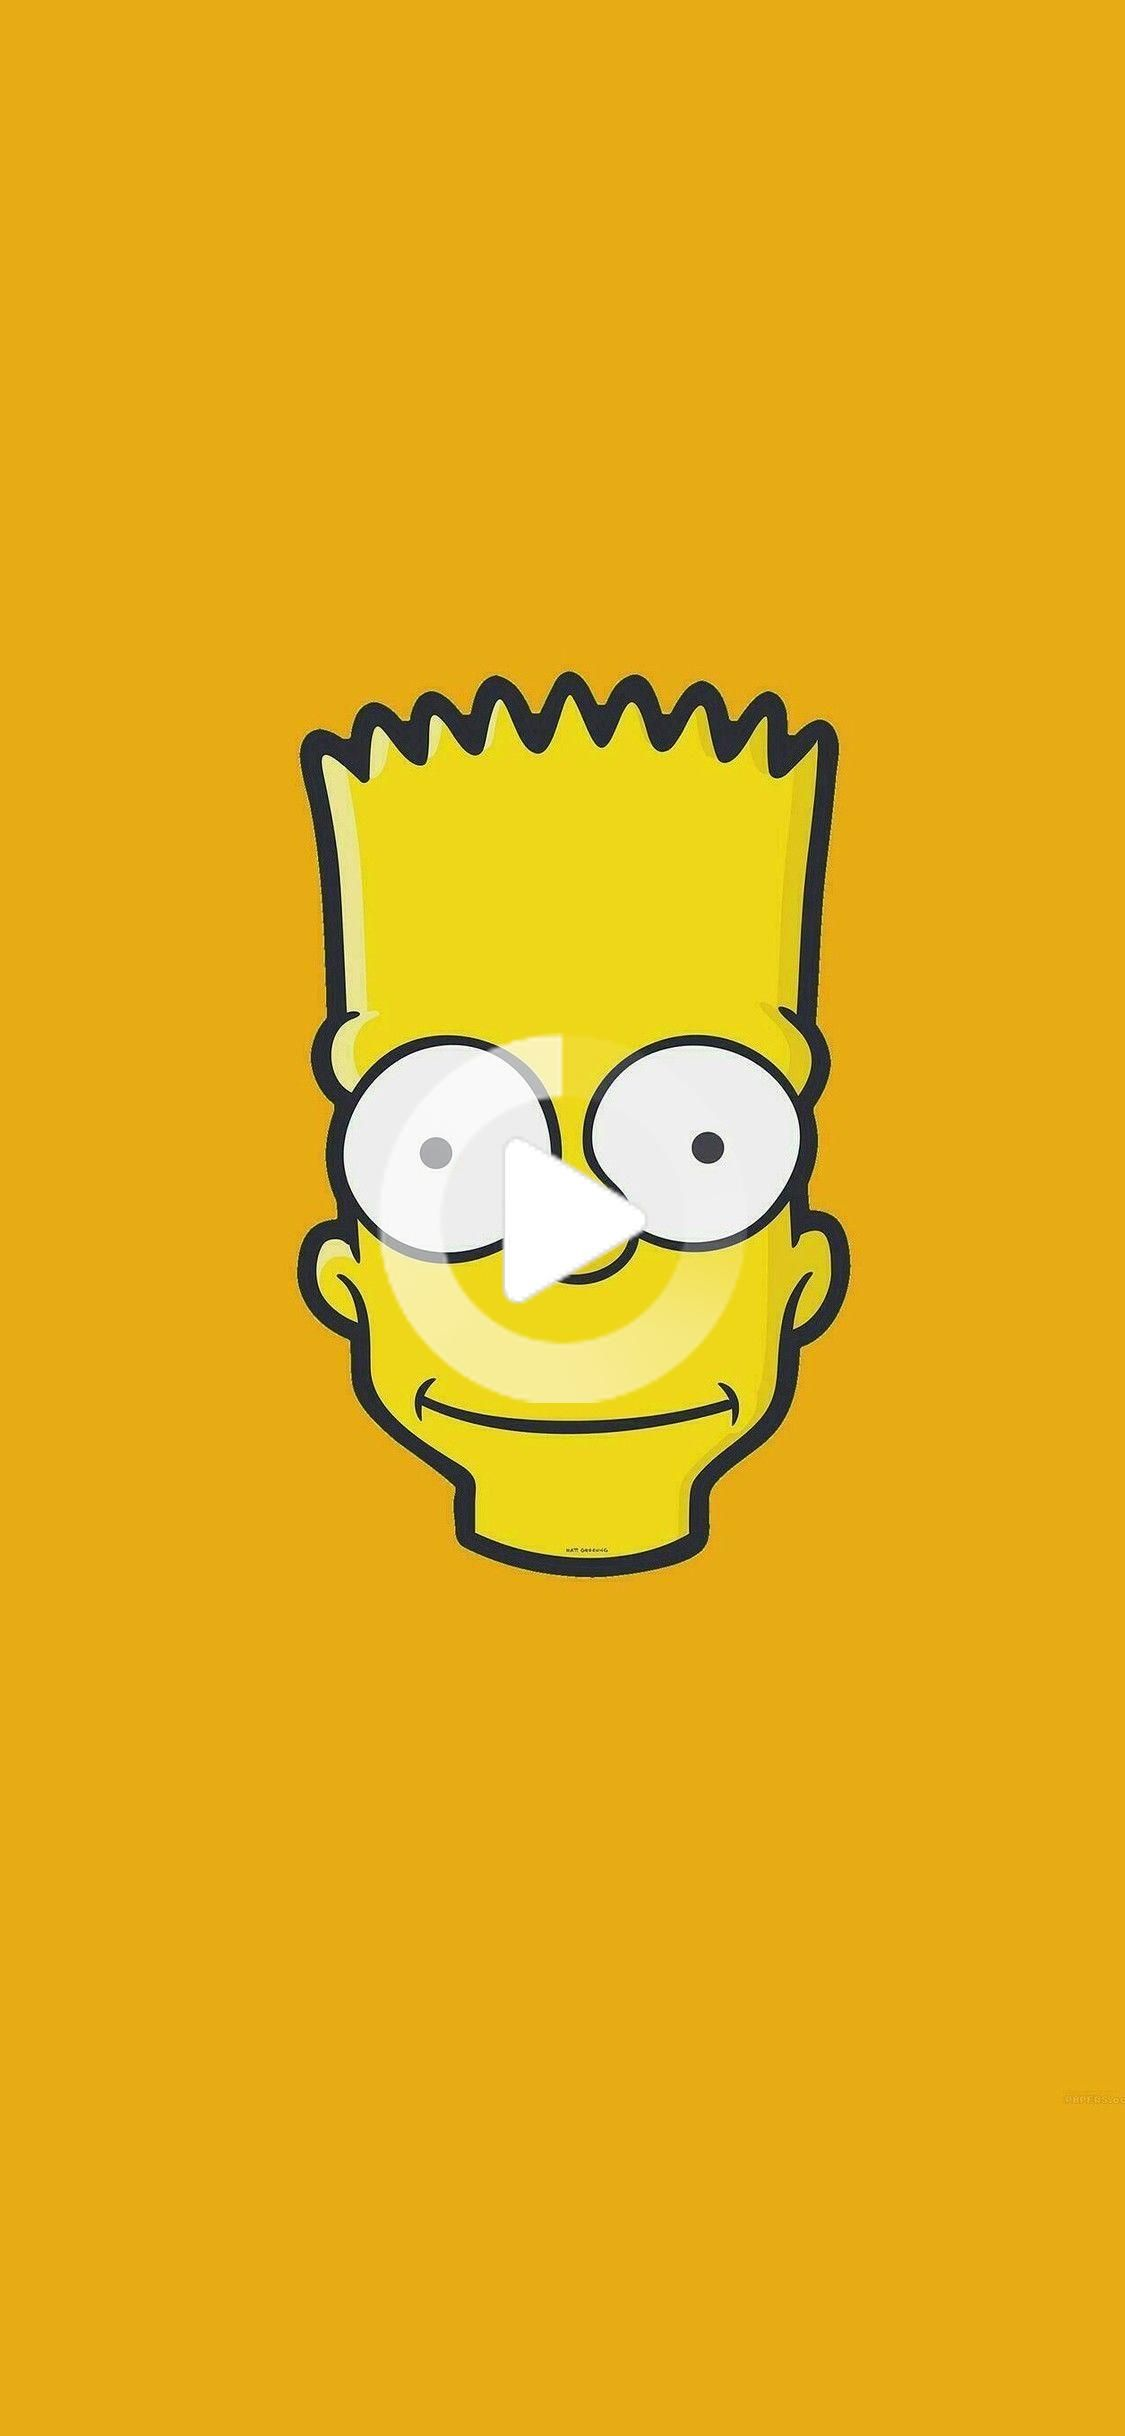 Bart Simpson Iphone Wallpapers Top Free Bart Simpson Throughout The Simpsons Wallpapers Iphone In 2020 Simpson Wallpaper Iphone Iphone Wallpaper Simpson